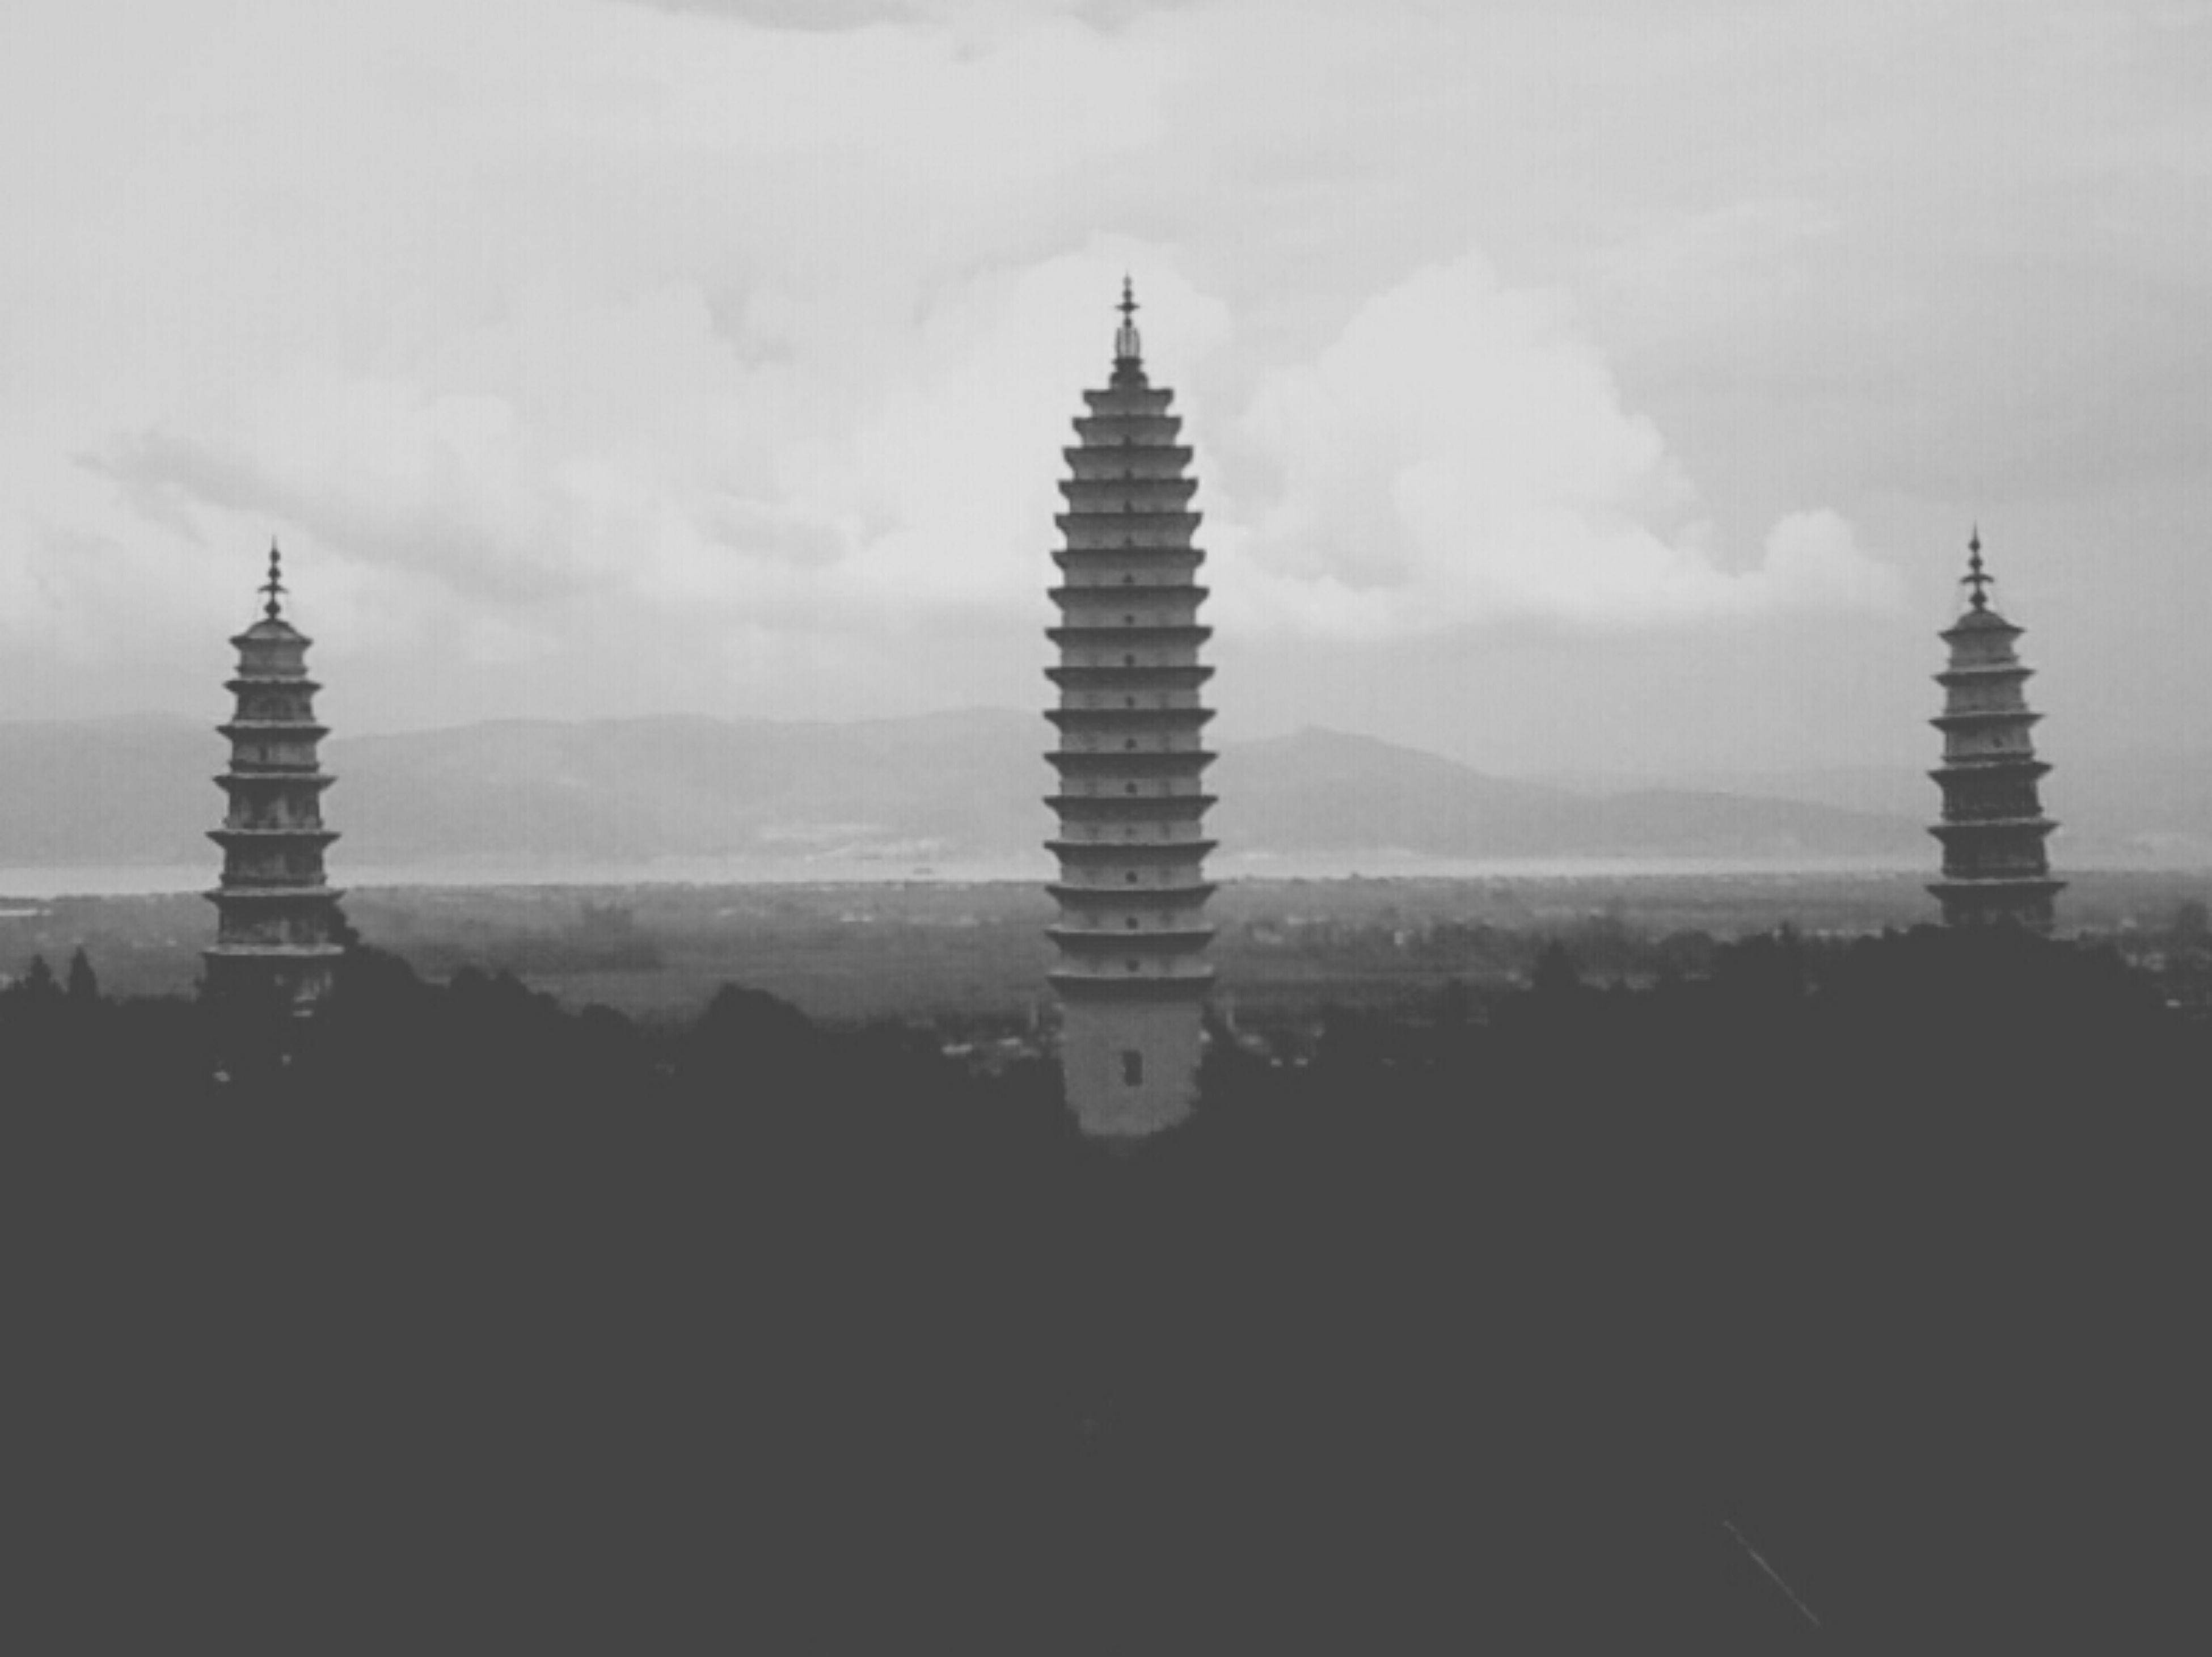 architecture, sky, built structure, building exterior, tower, tranquility, cloud - sky, famous place, tranquil scene, travel destinations, scenics, tall - high, nature, outdoors, history, silhouette, tourism, no people, beauty in nature, water